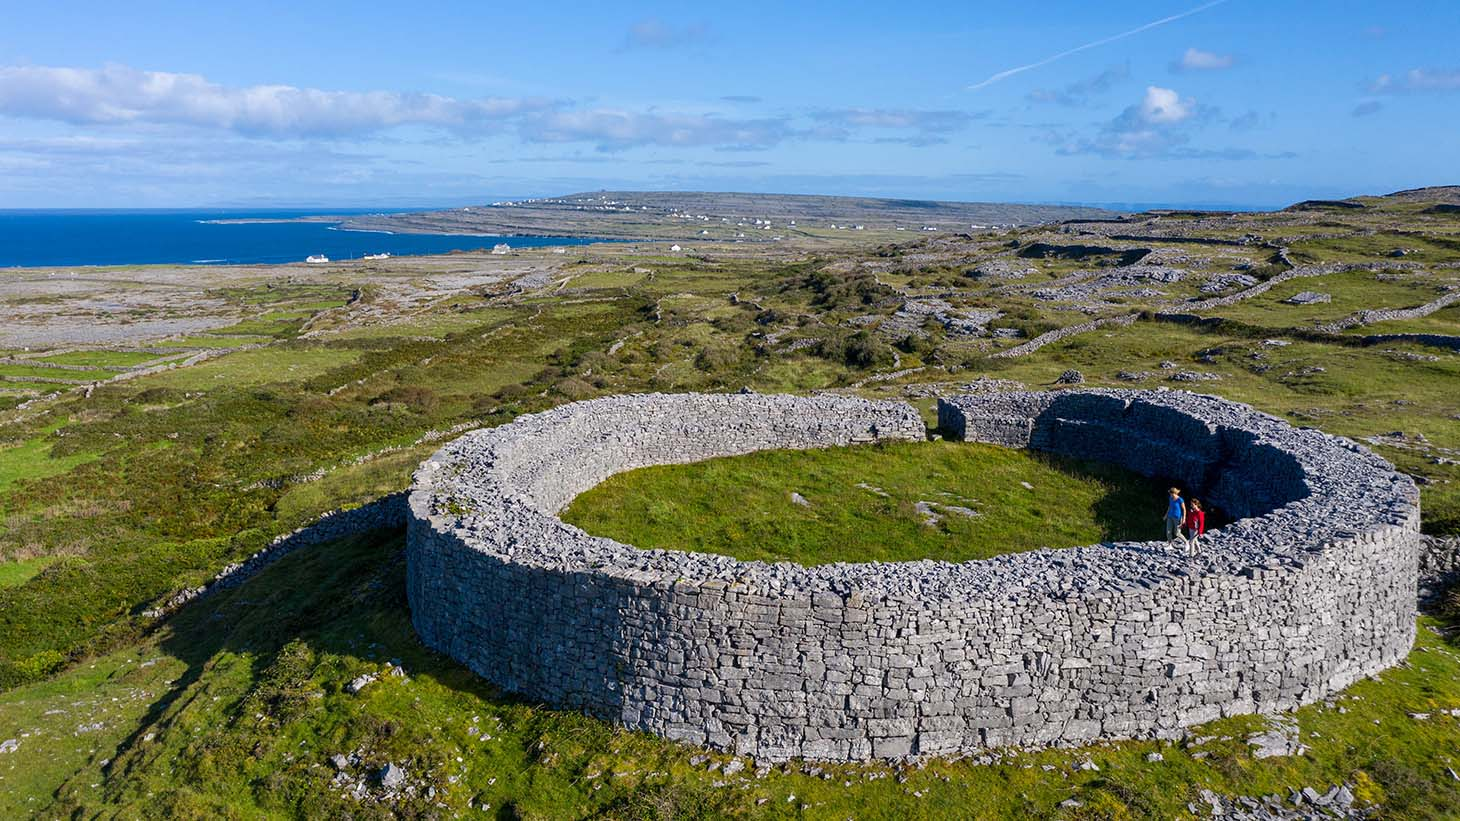 Plan a trip to scenic Inishbofin Island, just off the coast of Connemara.